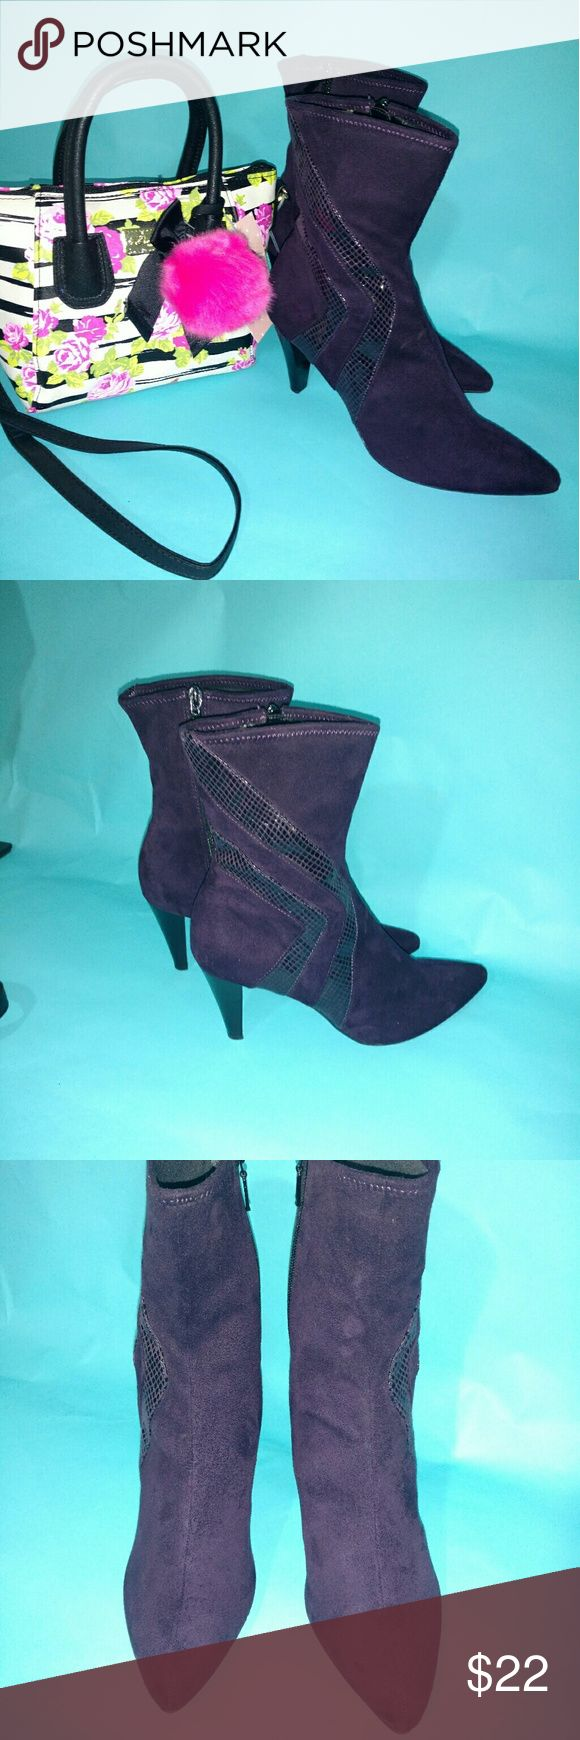 "Impo stretch purple ankle boots 8 1/2 Dark purple ankle boots, side zip, stretch, heel height 3"". snake skin zig-zag design going up outside of boot. Size 8 1/2 Impo Shoes Ankle Boots & Booties"